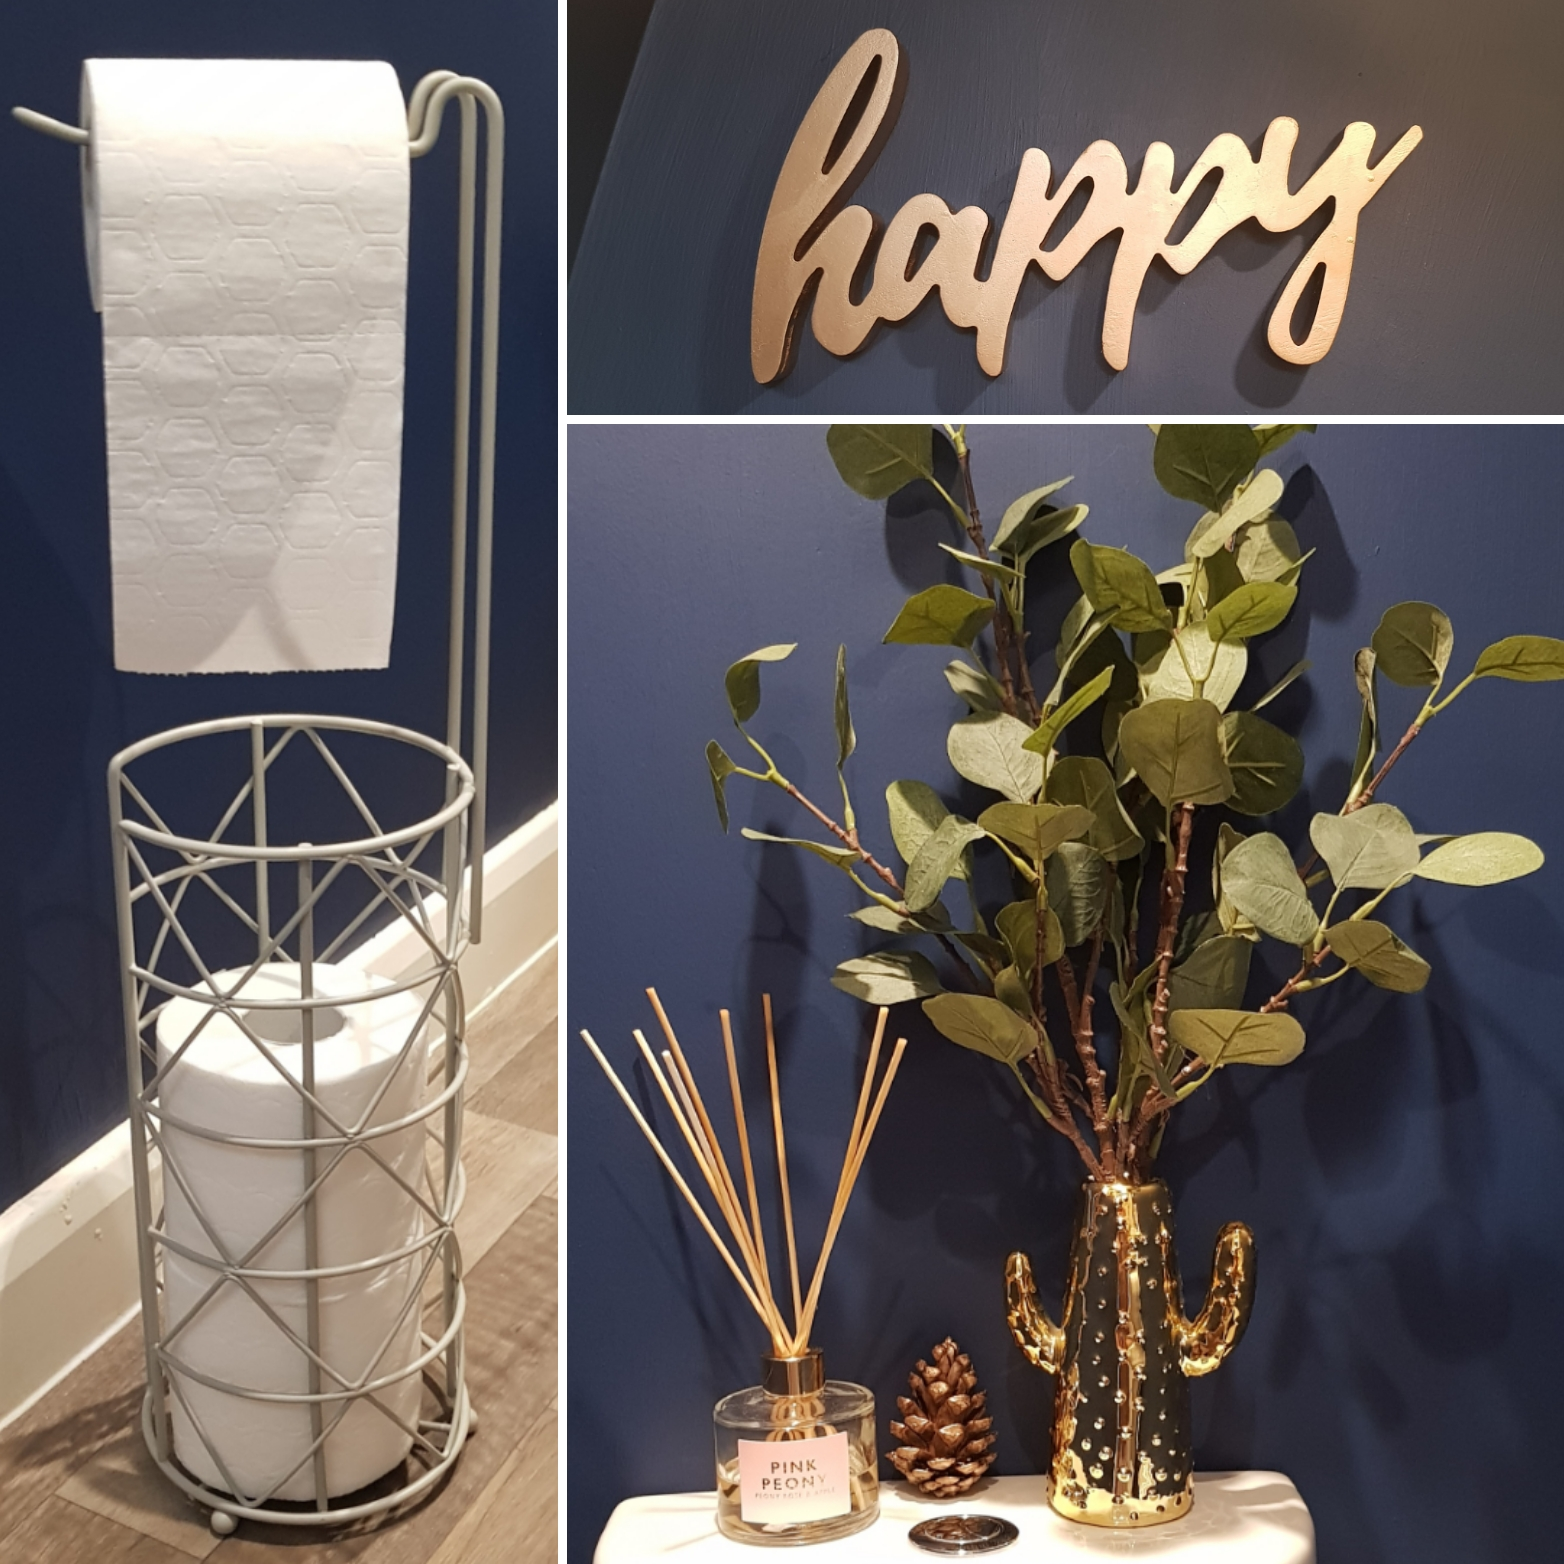 Budget Room Makeover: Toilet roll, Cactus & Happy sign